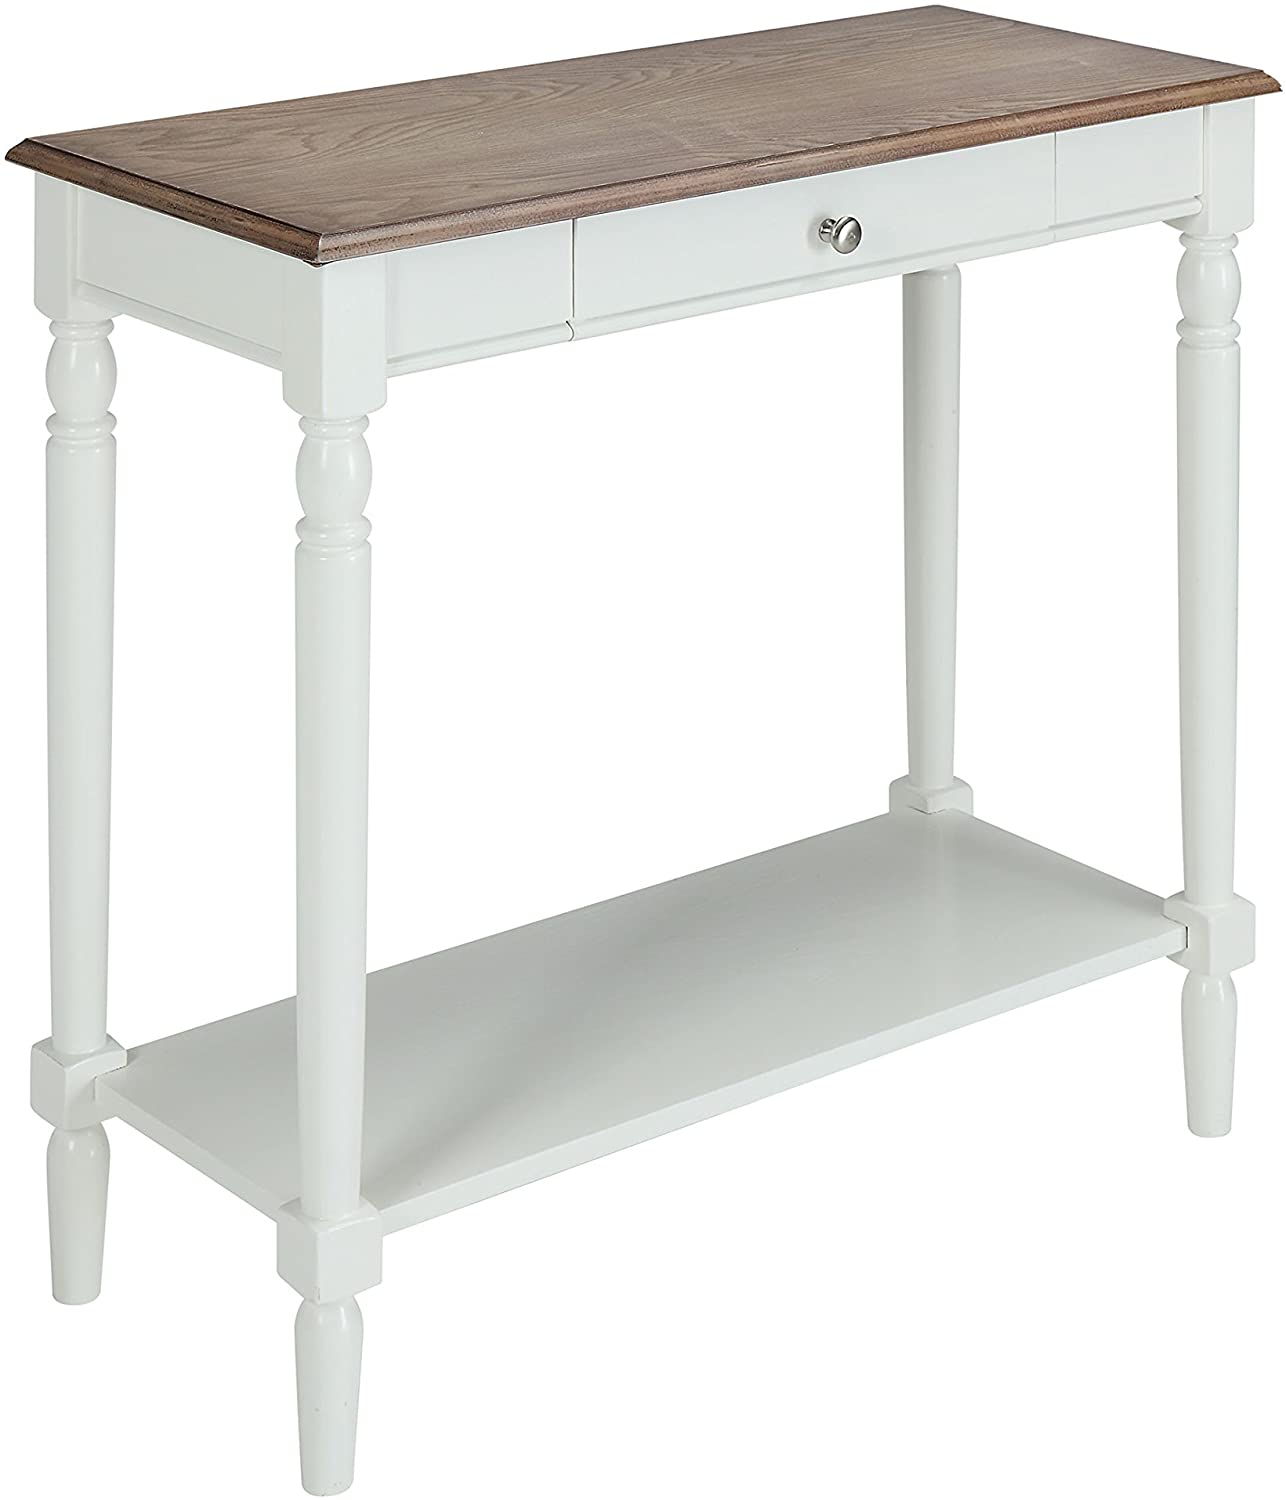 Convenience Concepts French Country Hall Table with Drawer and Shelf, Driftwood / White